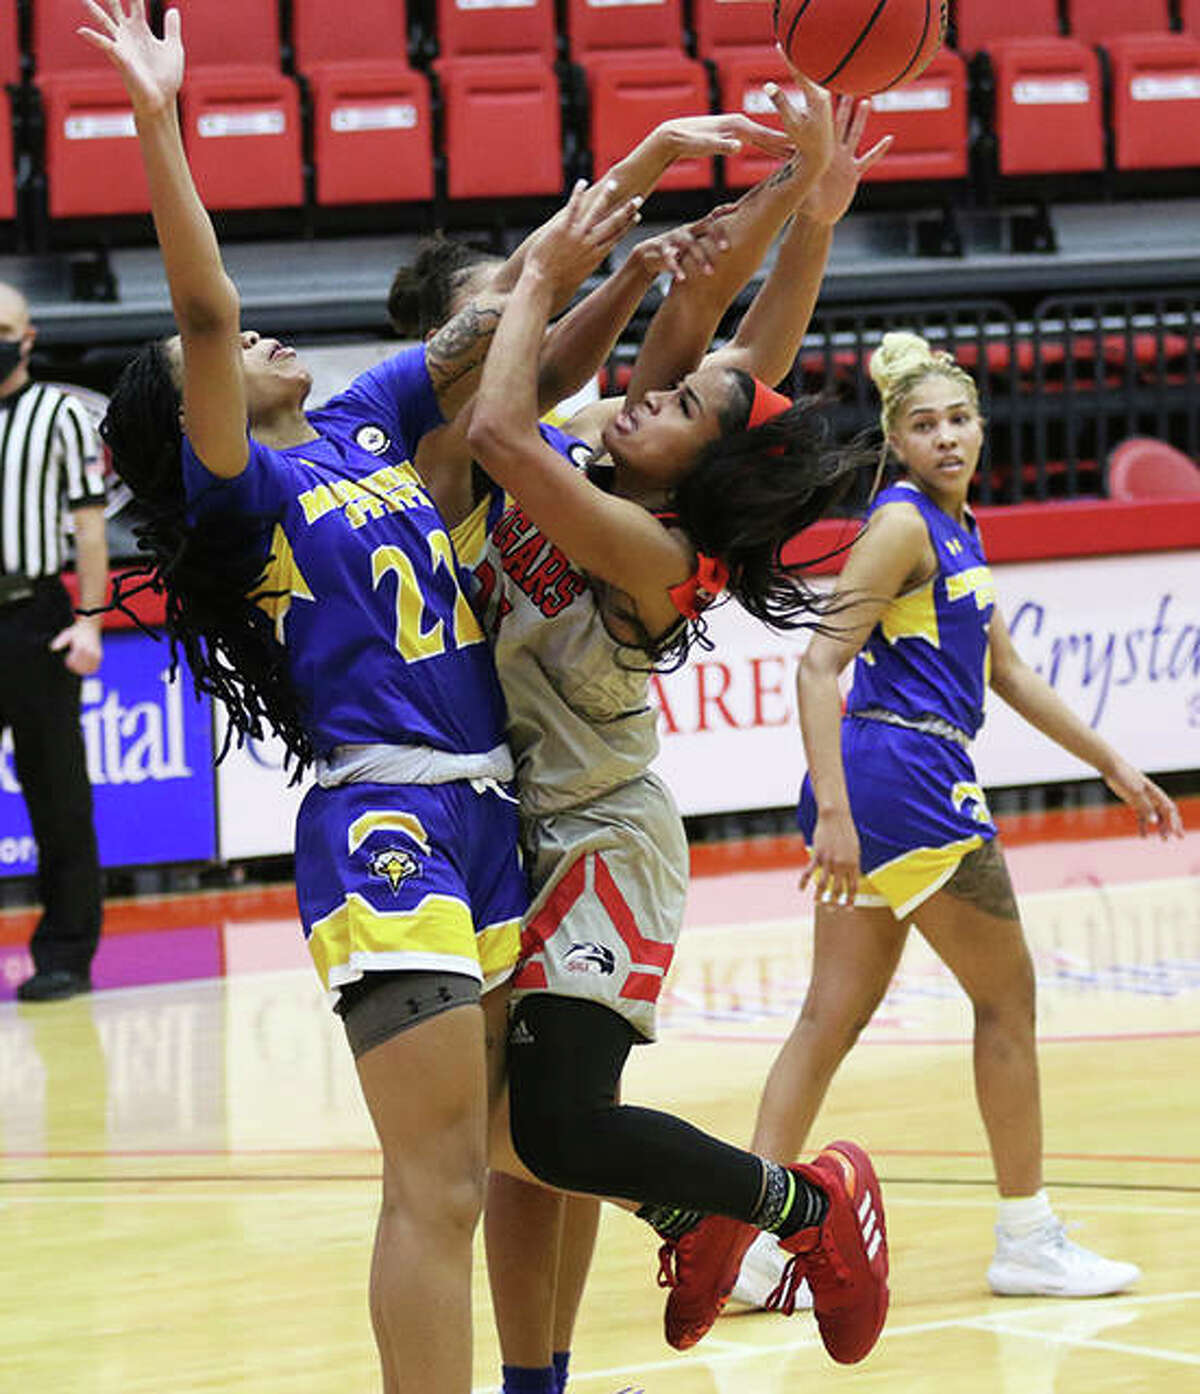 SIUE's Mikala Hall has her shot blocked by Morehead State's Gabby Crawford in the first half at First Community Arena in Edwardsville.